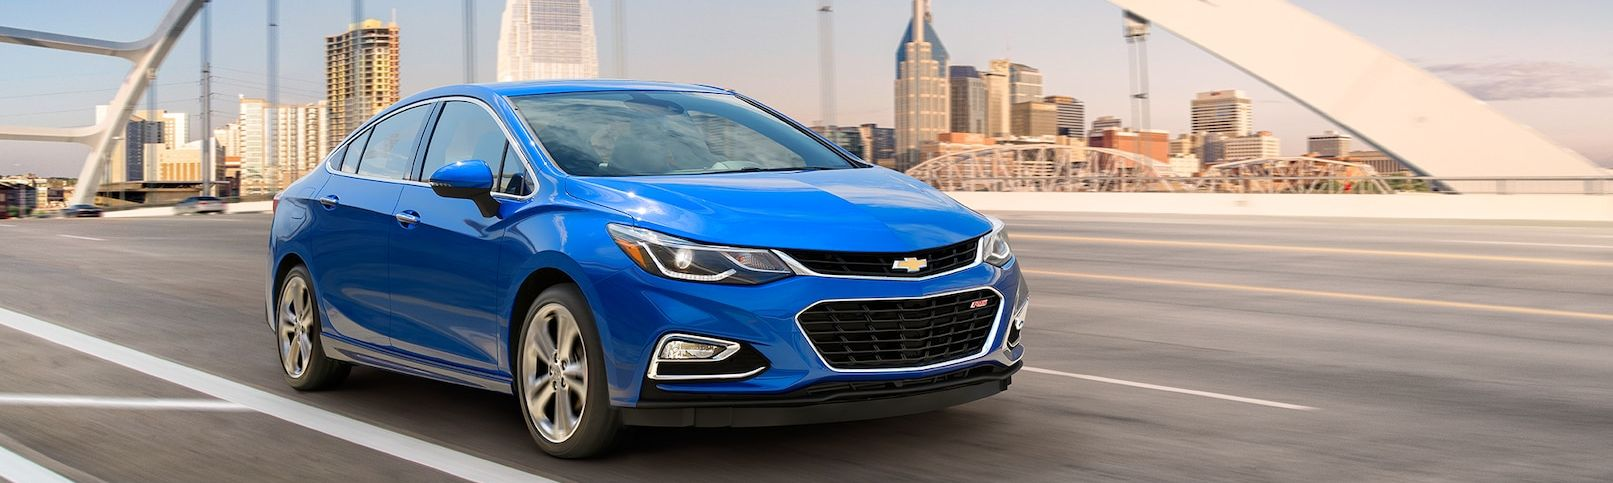 2018 Chevrolet Cruze For Sale Near Tulsa Ok James Hodge Chevrolet